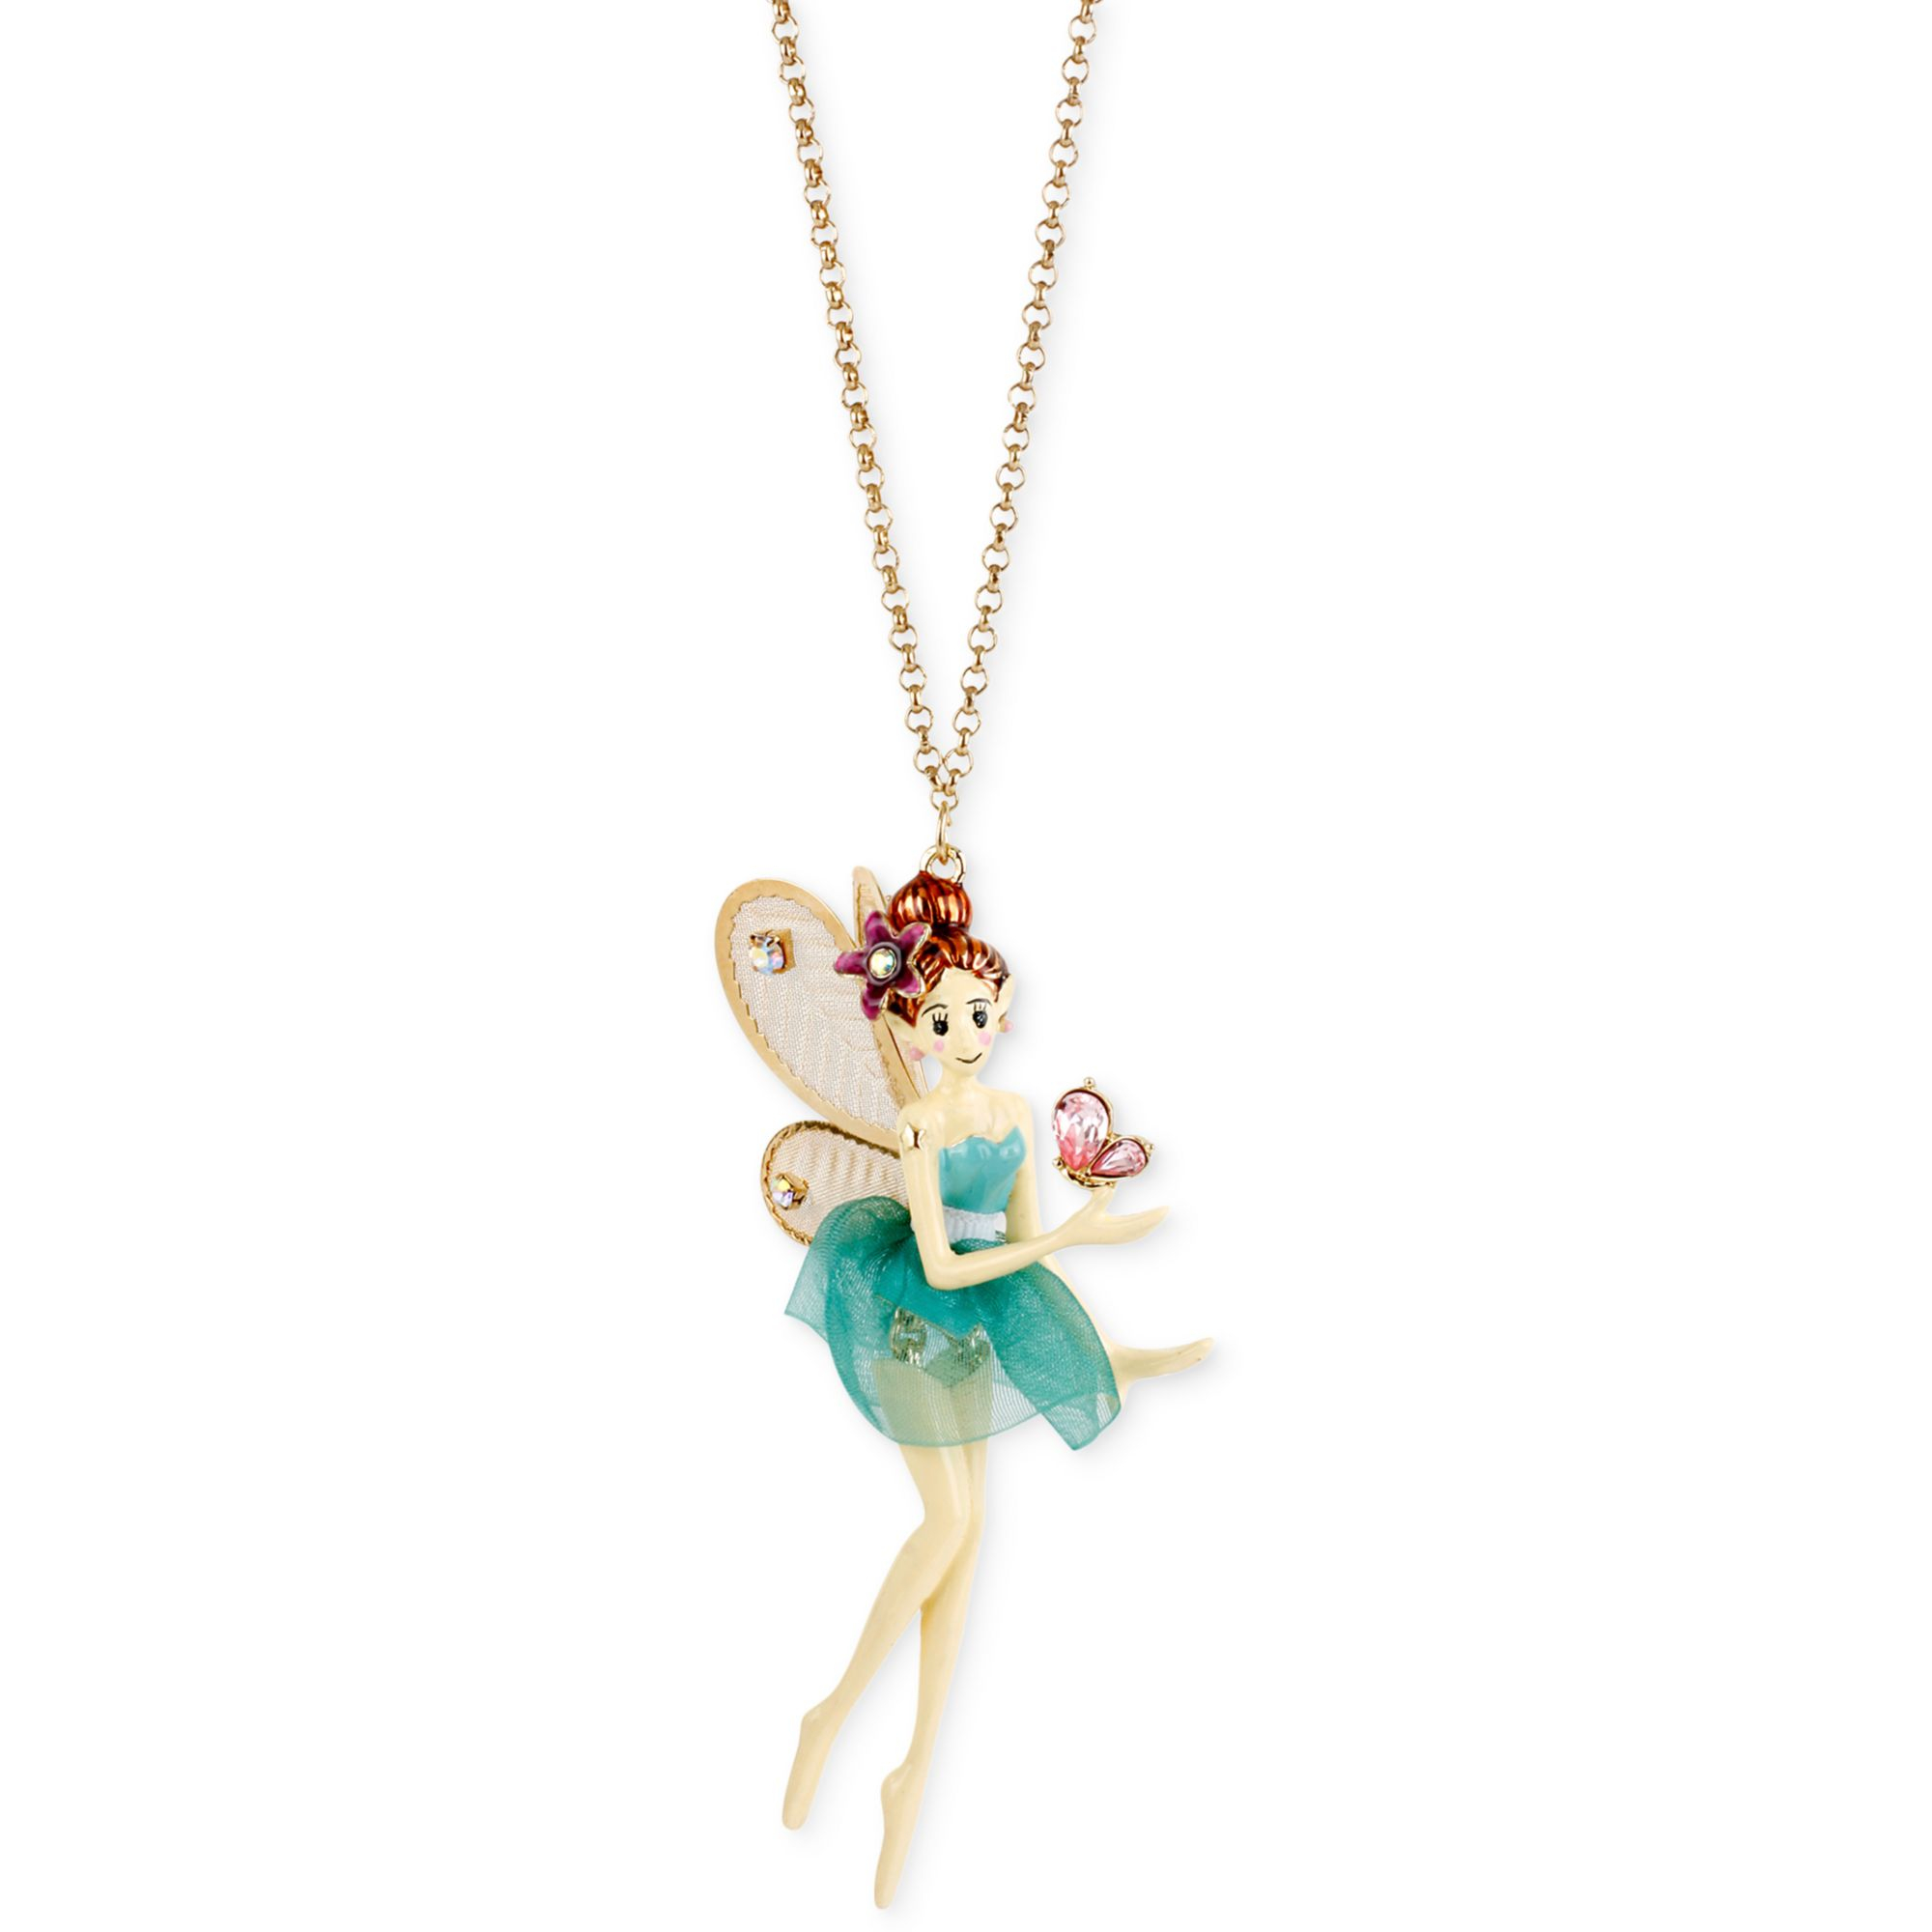 Betsey johnson antique goldtone fairy pendant necklace in metallic gallery aloadofball Image collections